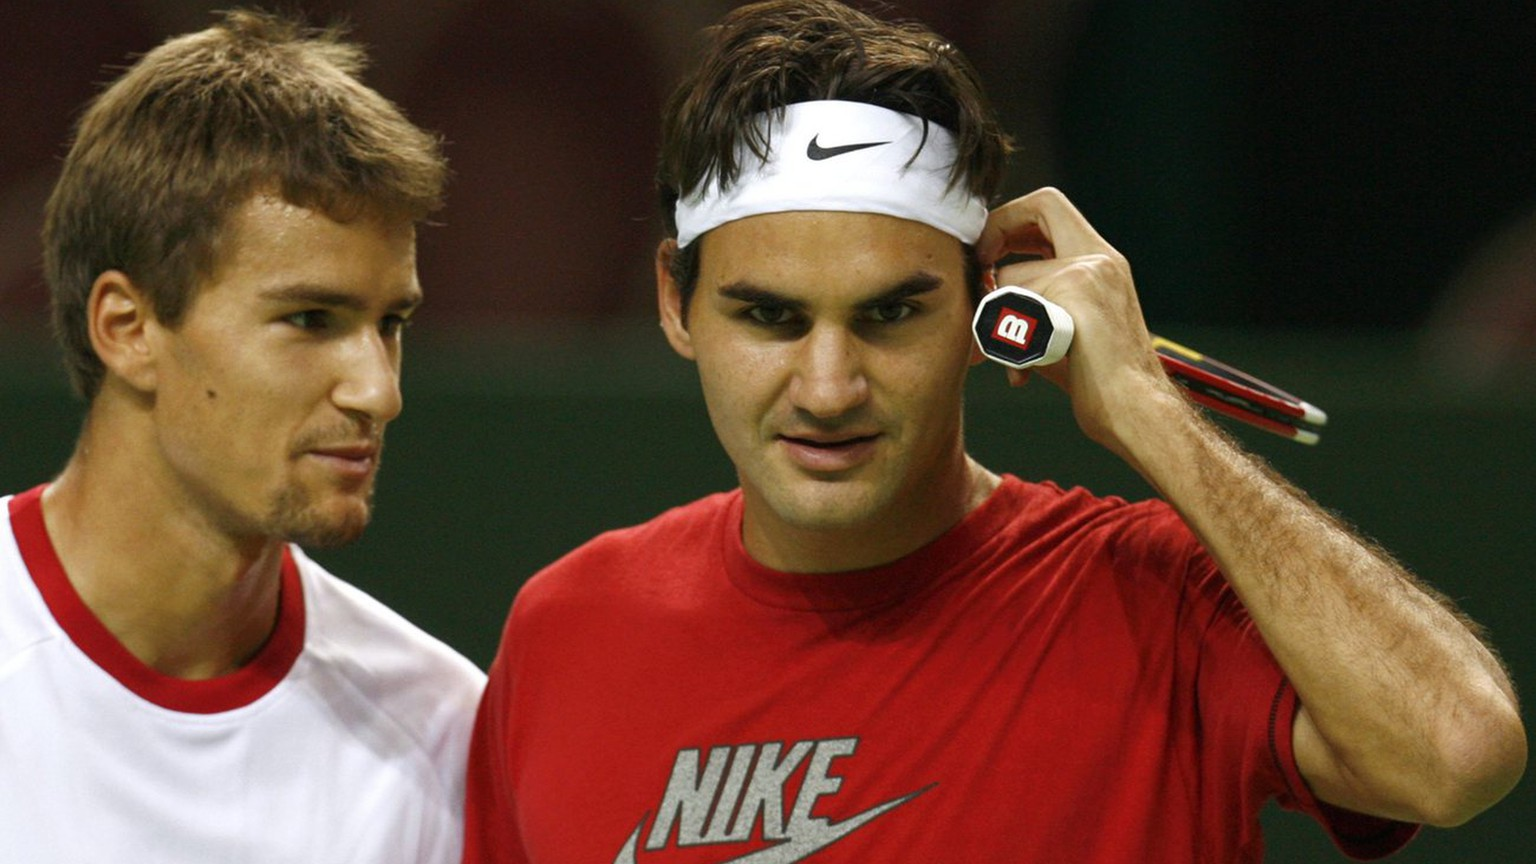 World number one tennis player Roger Federer of Switzerland, right, and teammate Marco Chiudinelli, left, speak together during the first training session before their Davis Cup World Group Play-offs 1st round against Serbia, in Geneva, Switzerland, on Monday, September 18, 2006. (KEYSTONE/Laurent Gillieron)